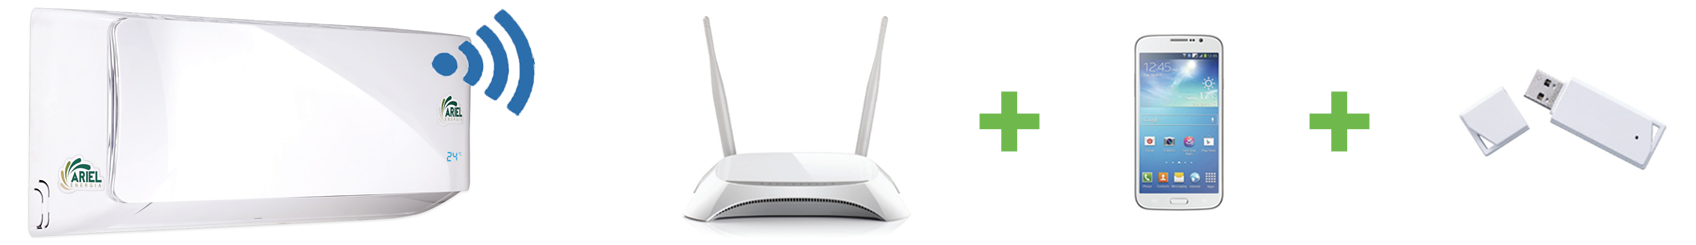 tecnologia Wifi Ready Ariel: app mobile + router wireless + adattatore wifi climatizzatore